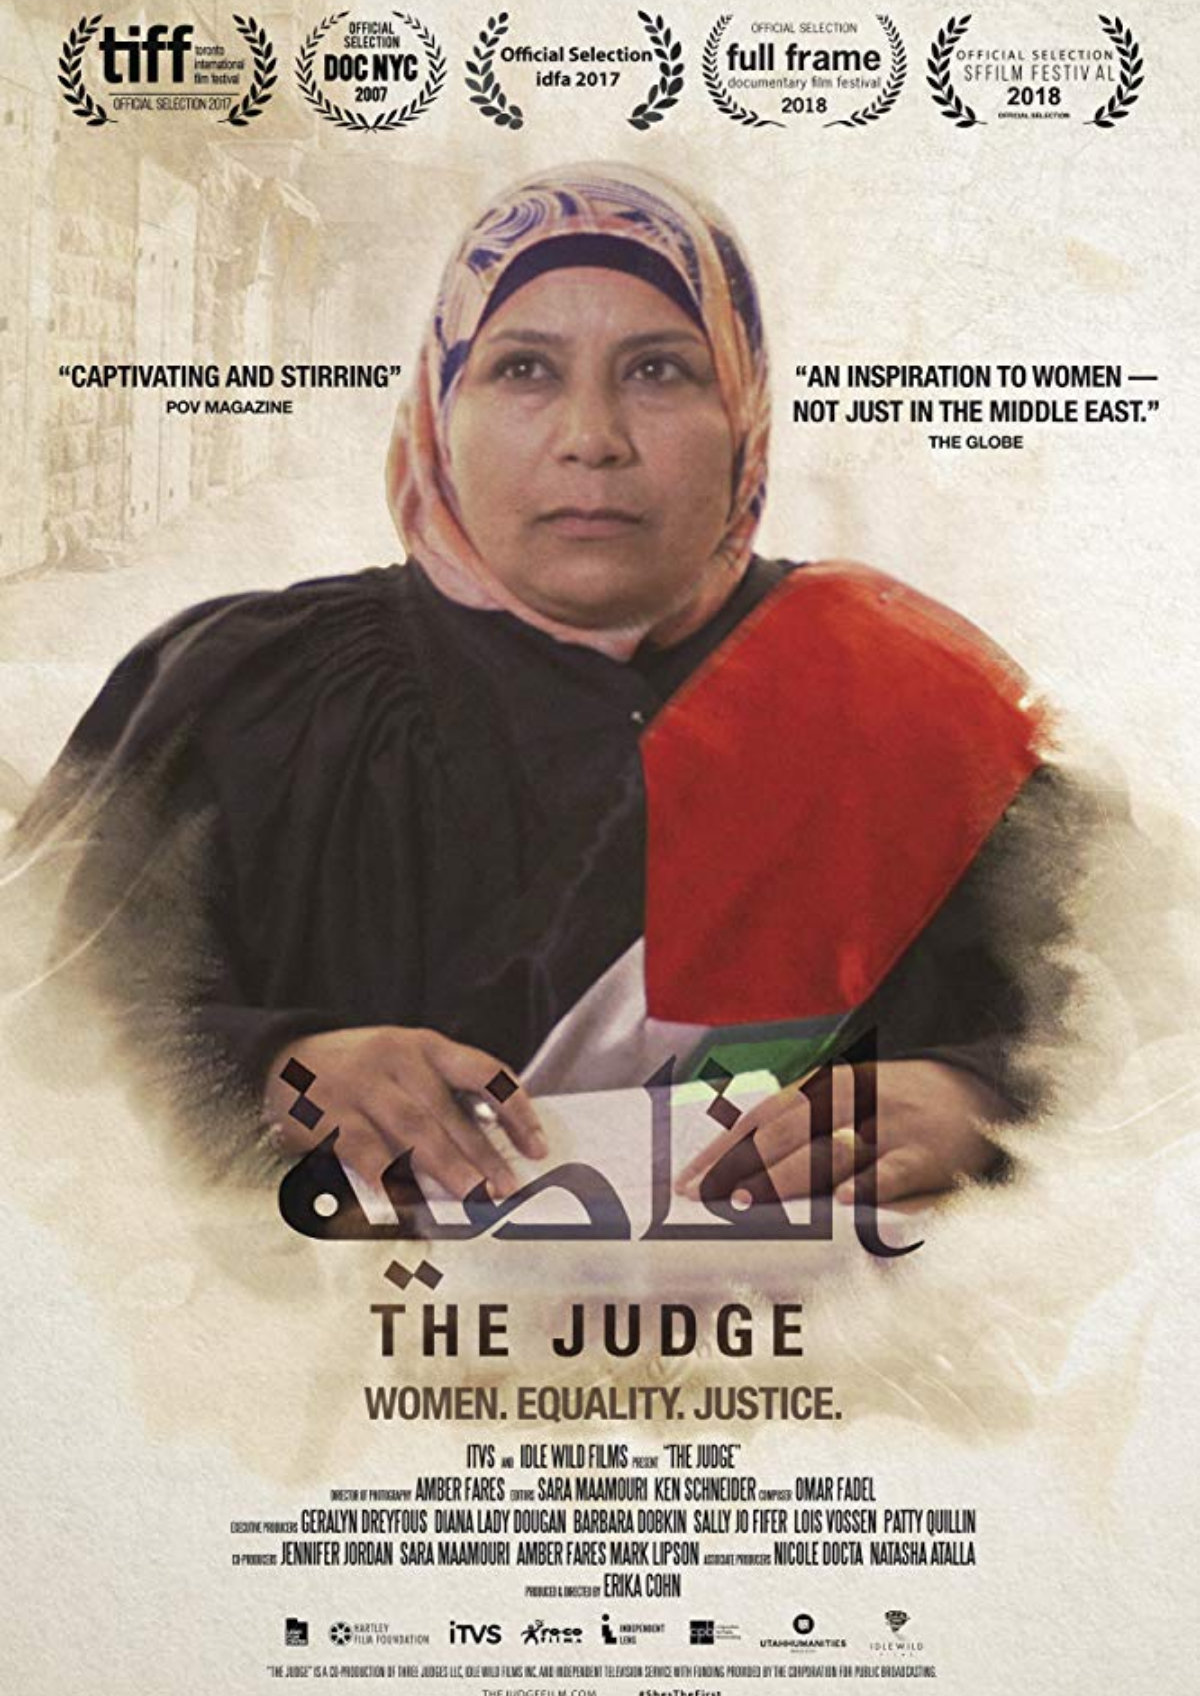 'The Judge' movie poster